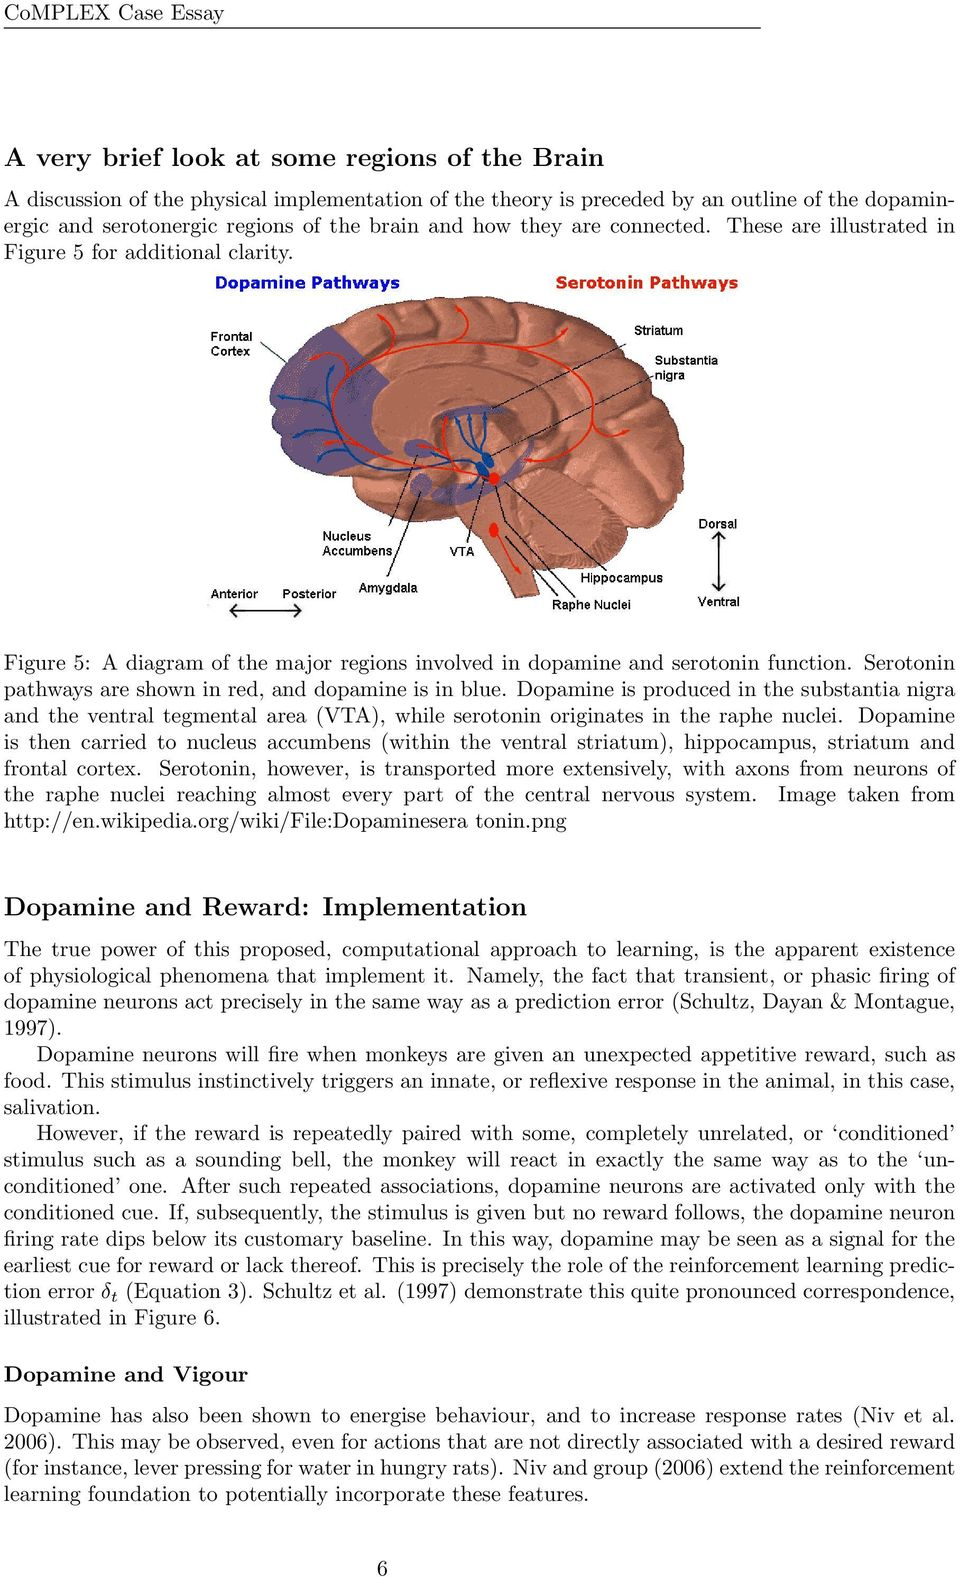 The Interactions of Dopamine and Serotonin in Depression - PDF